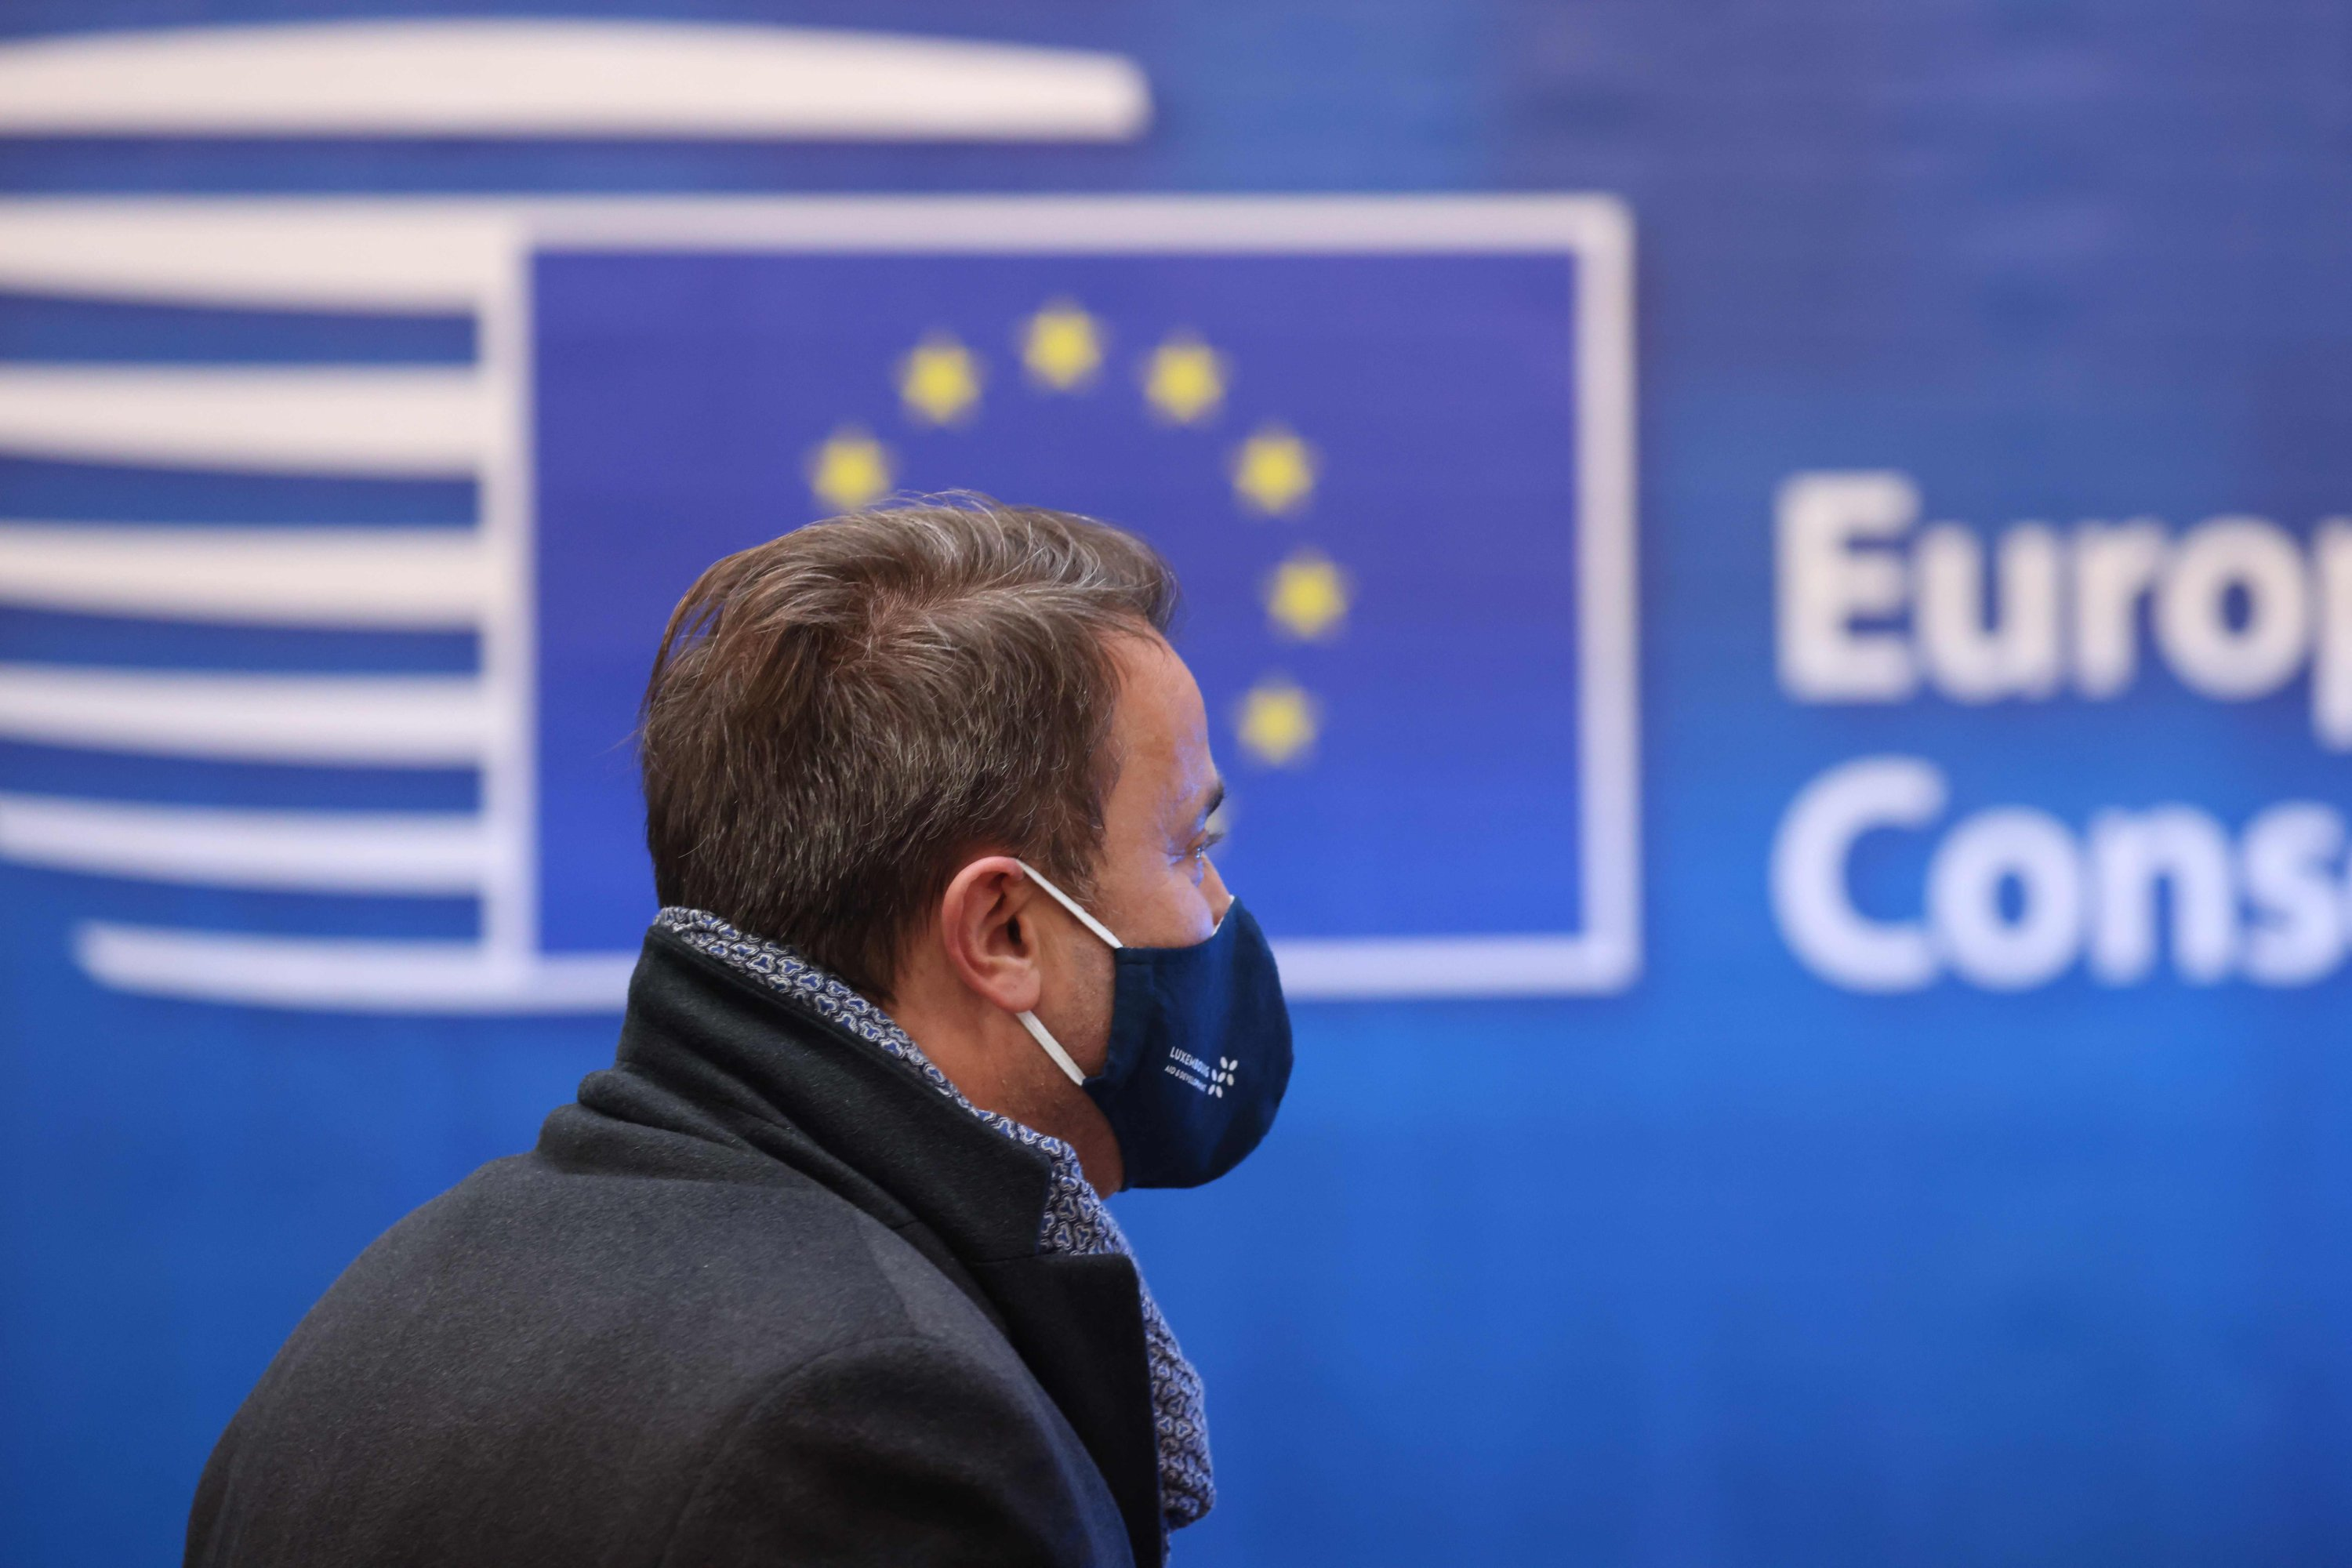 Luxembourg's Prime Minister Xavier Bettel leaves a roundtable meeting during an EU summit at the European Council building in Brussels, Belgium, Dec. 11, 2020. (AFP Photo)